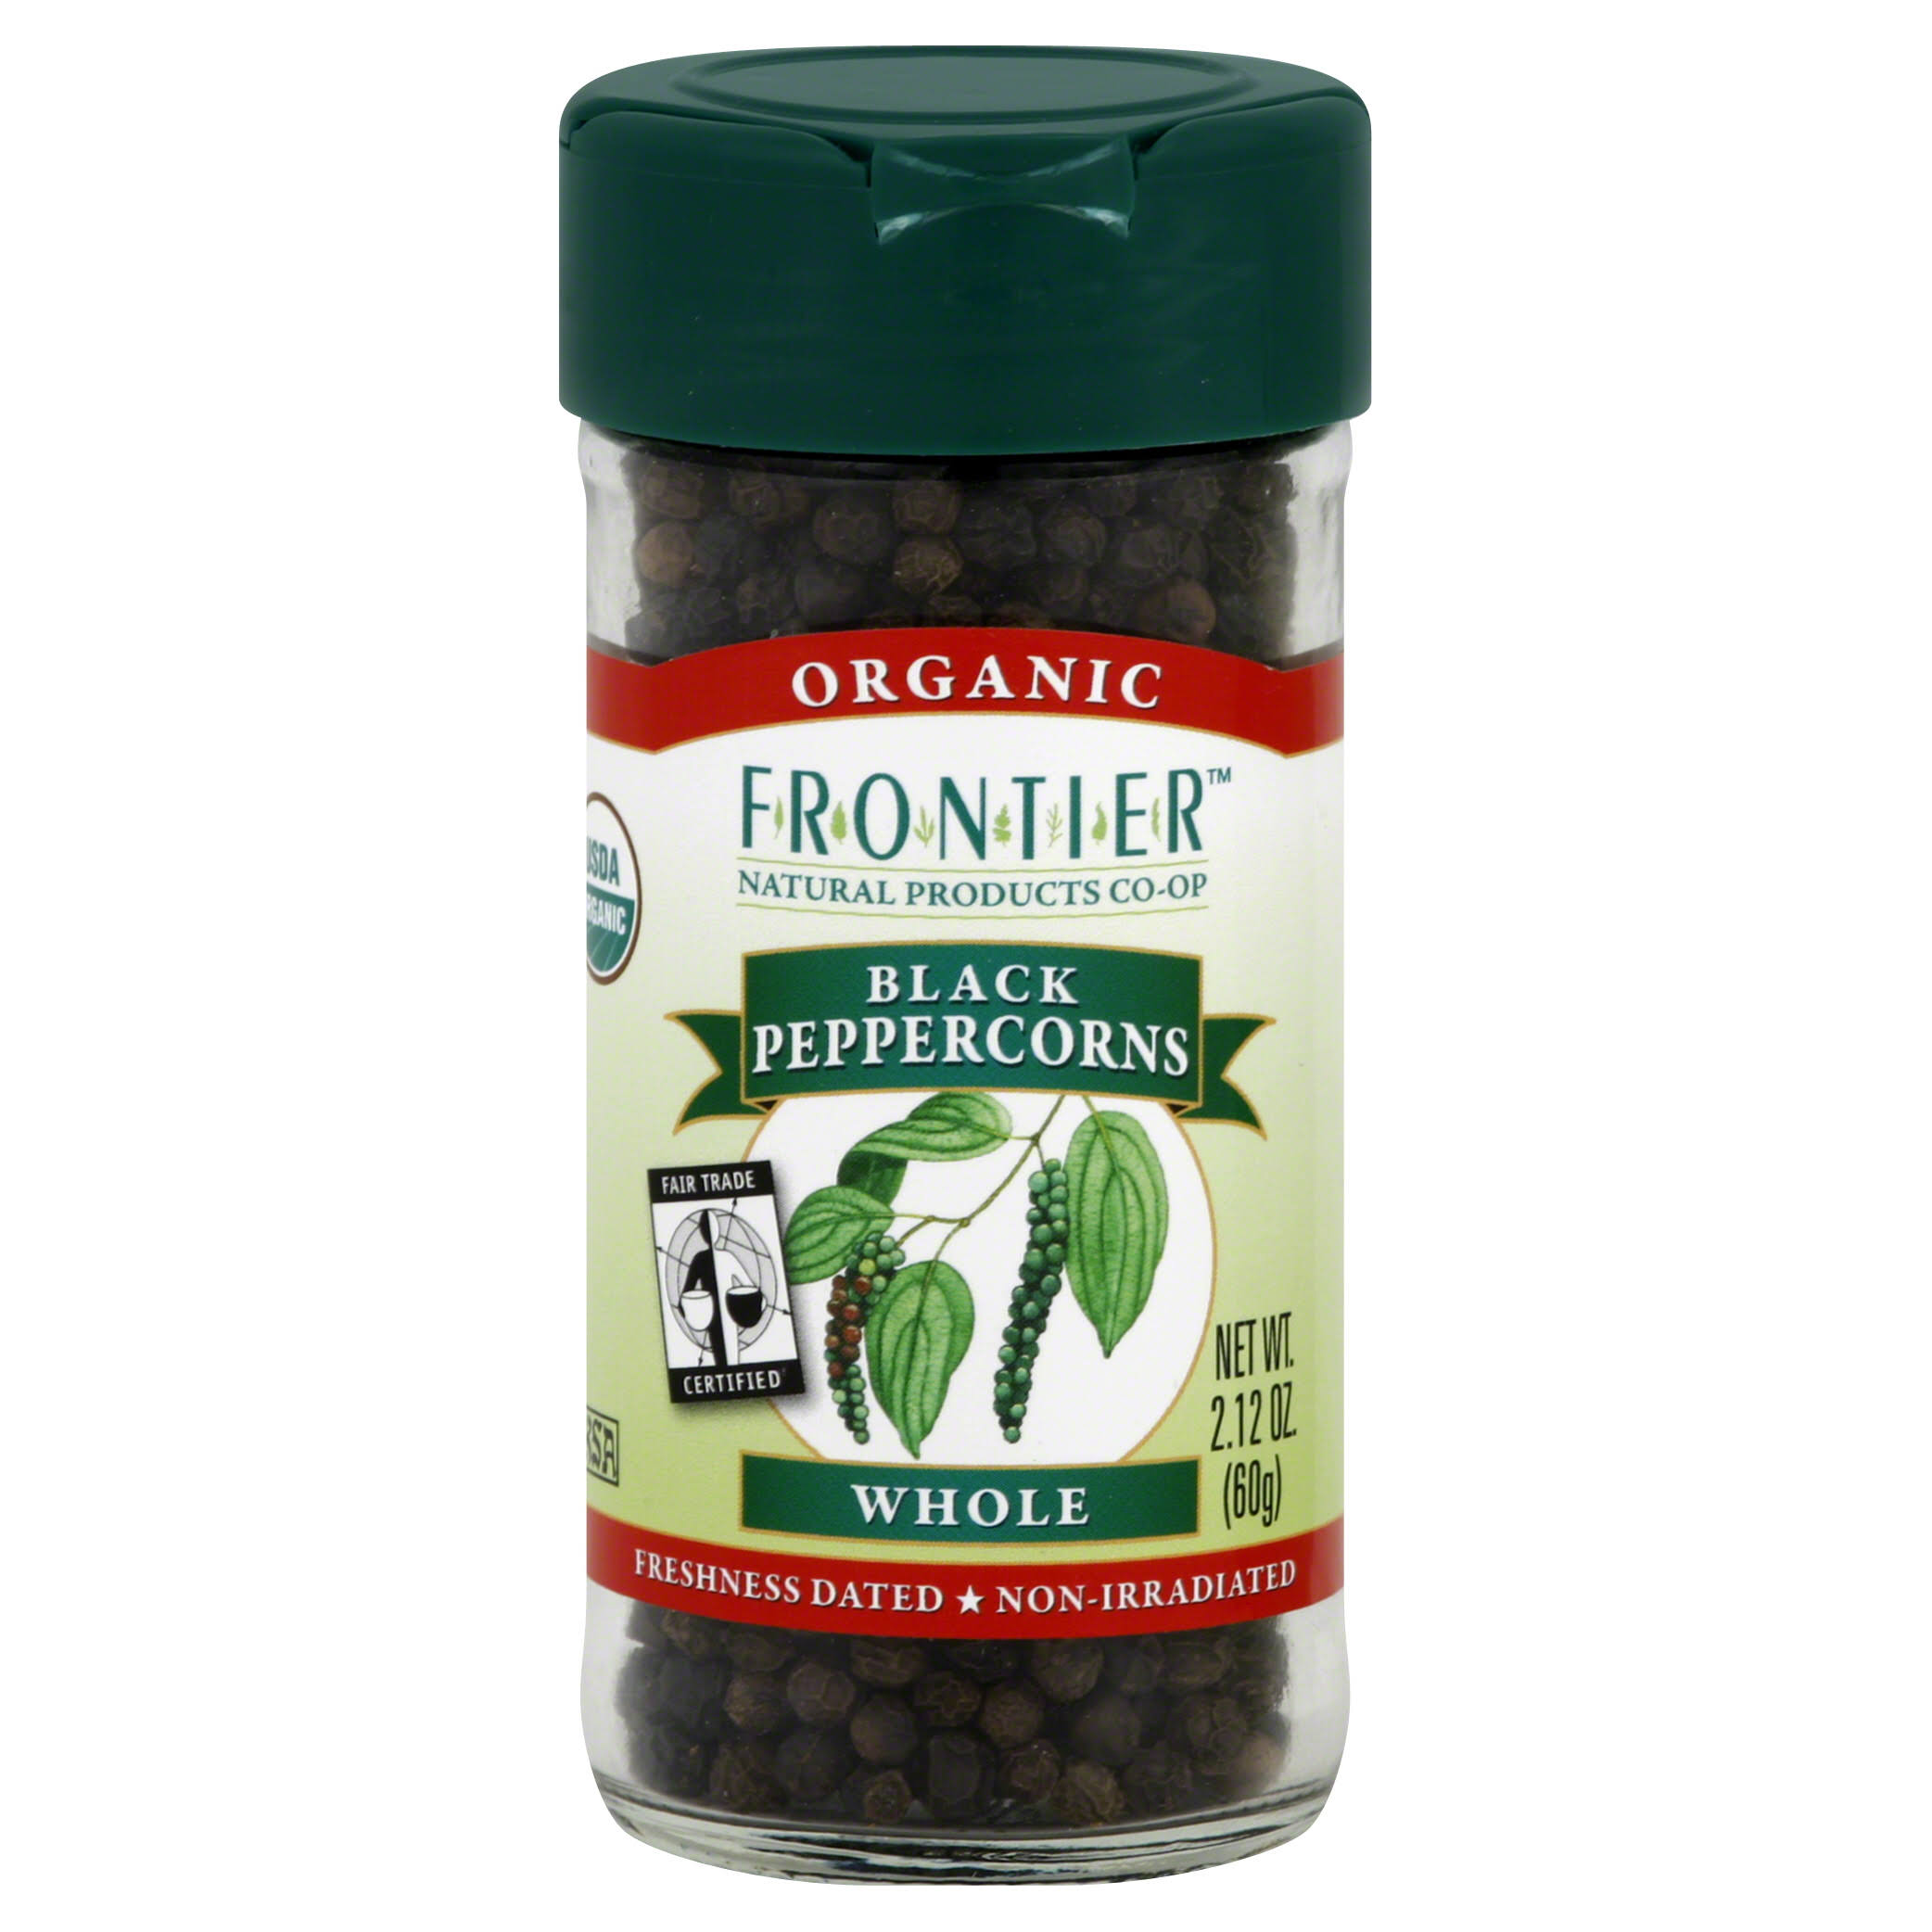 Frontier Black Peppercorns - Whole